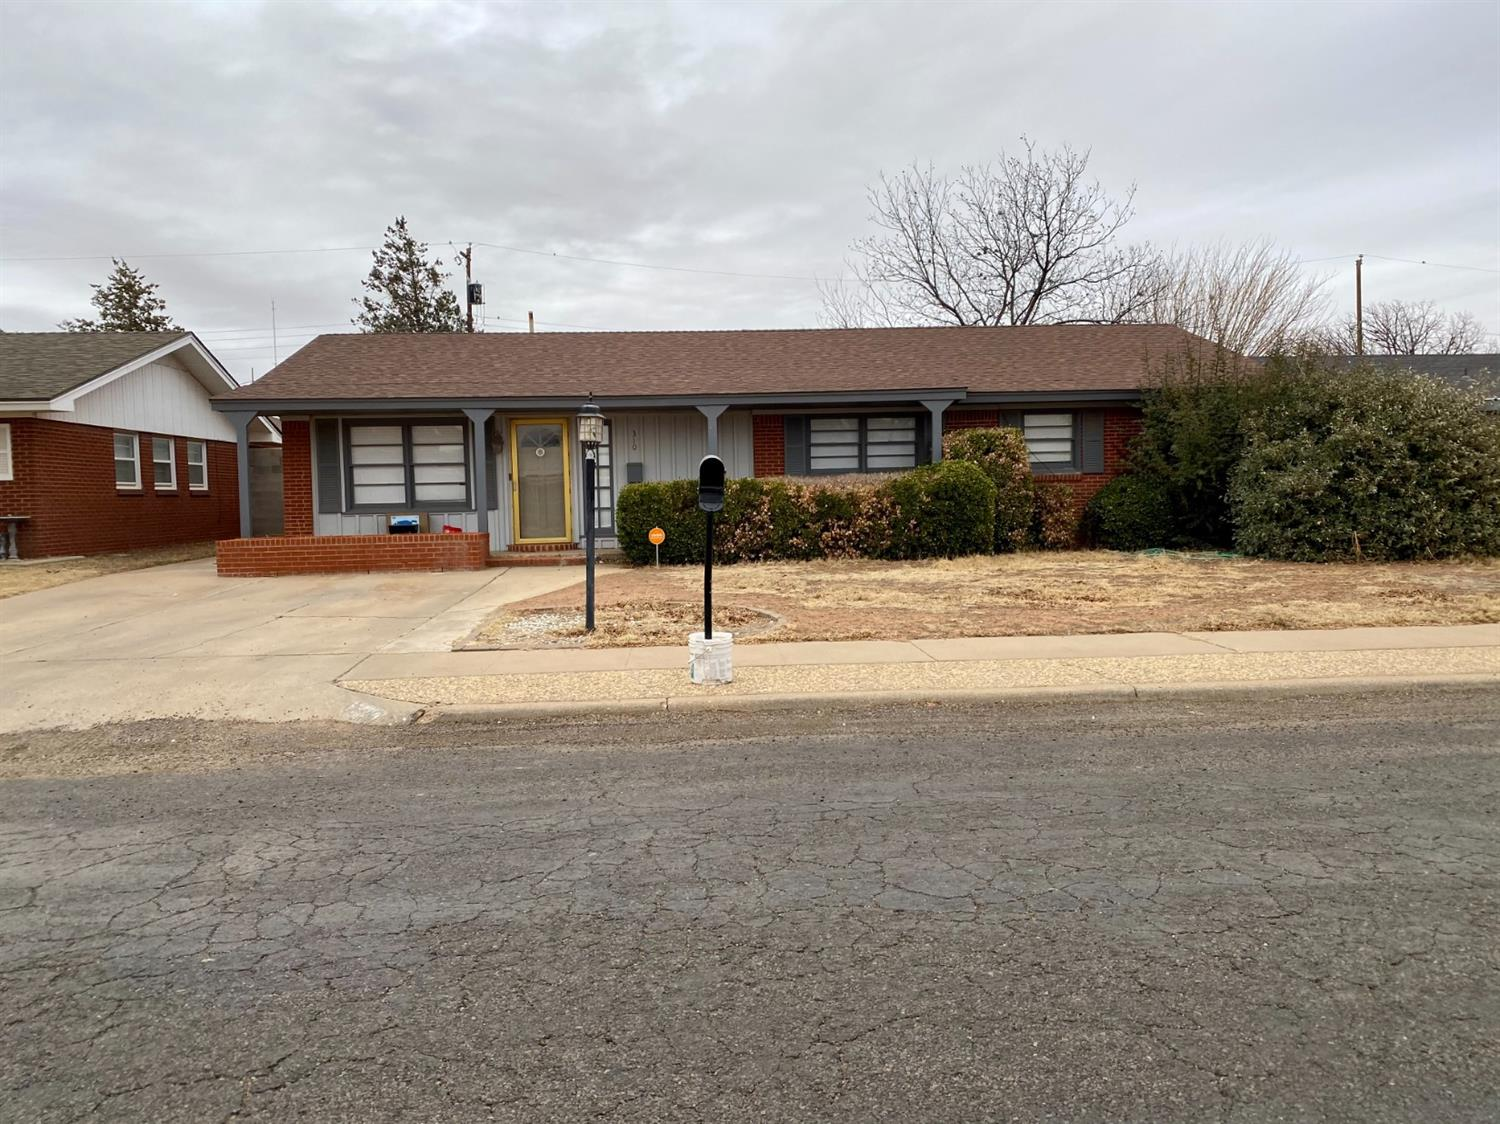 Looking for a home close to the elementary school?? Here it is! This home offers 3 bedrooms, 3 bath, 2 living areas, and several updates throughout. Open concept in kitchen and family room area. Large laundry room with a huge storage or playroom area. Great home ready for a new family!